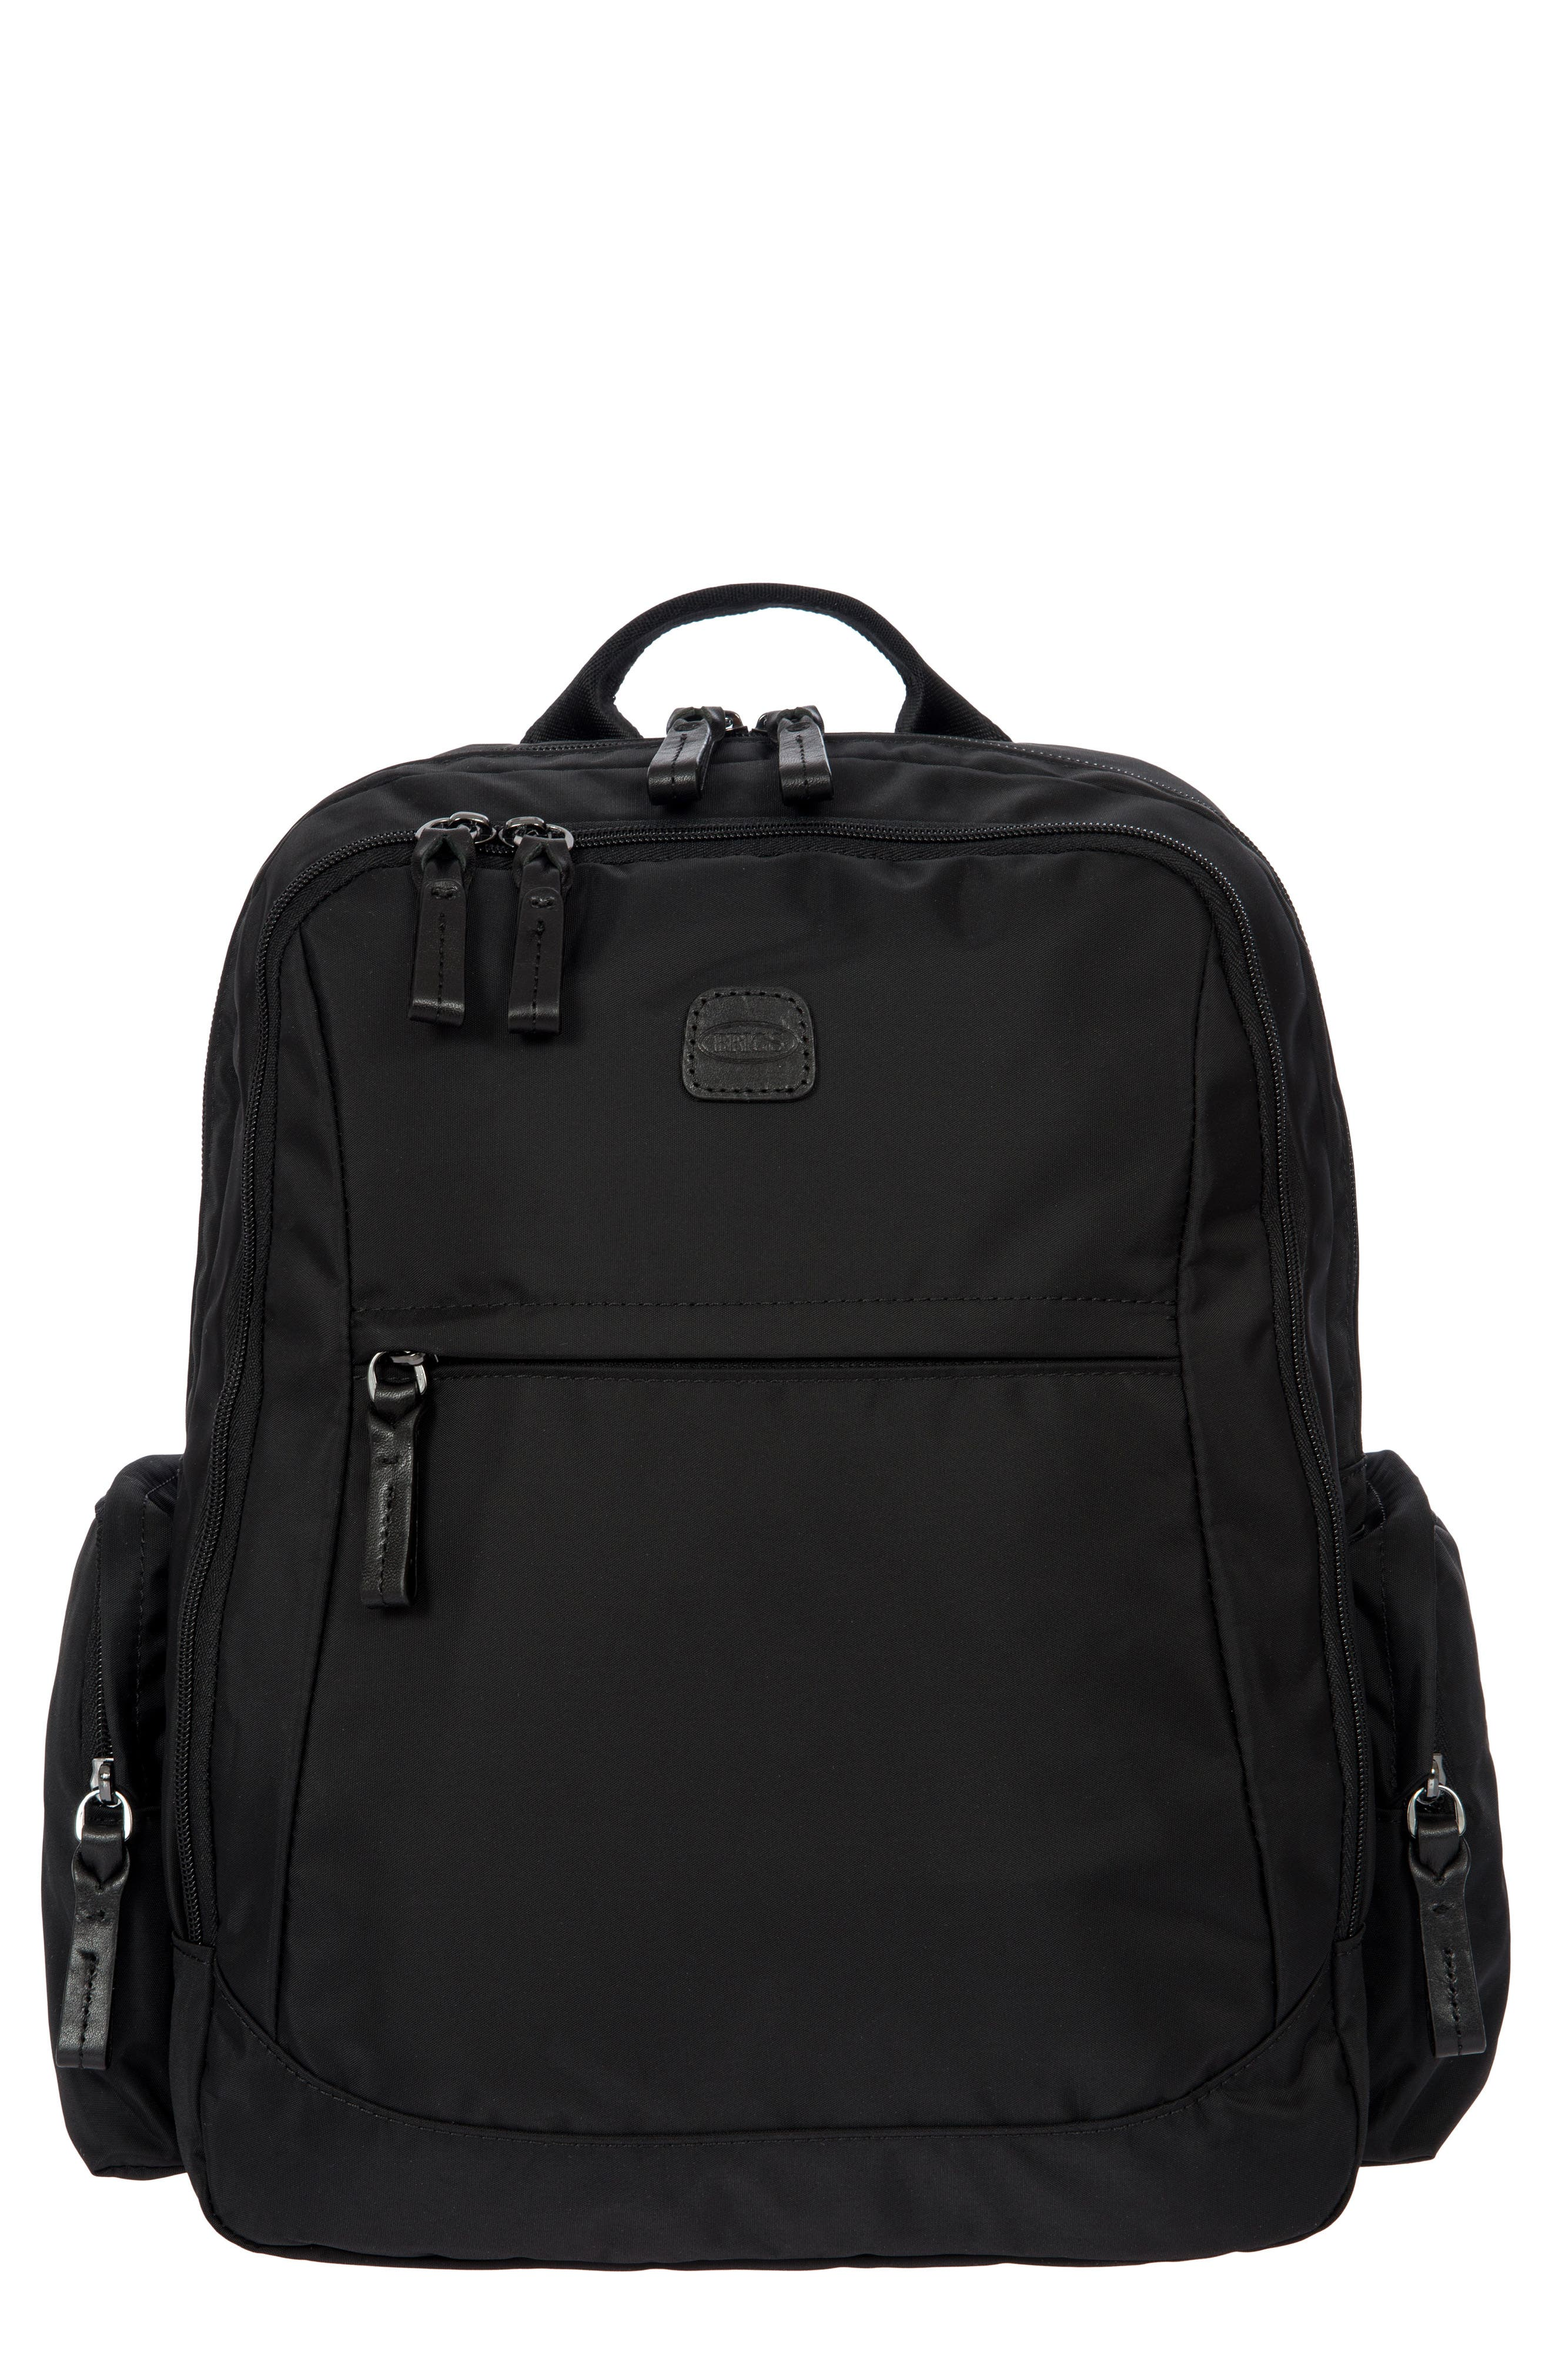 X-Travel Nomad Backpack,                             Main thumbnail 1, color,                             001